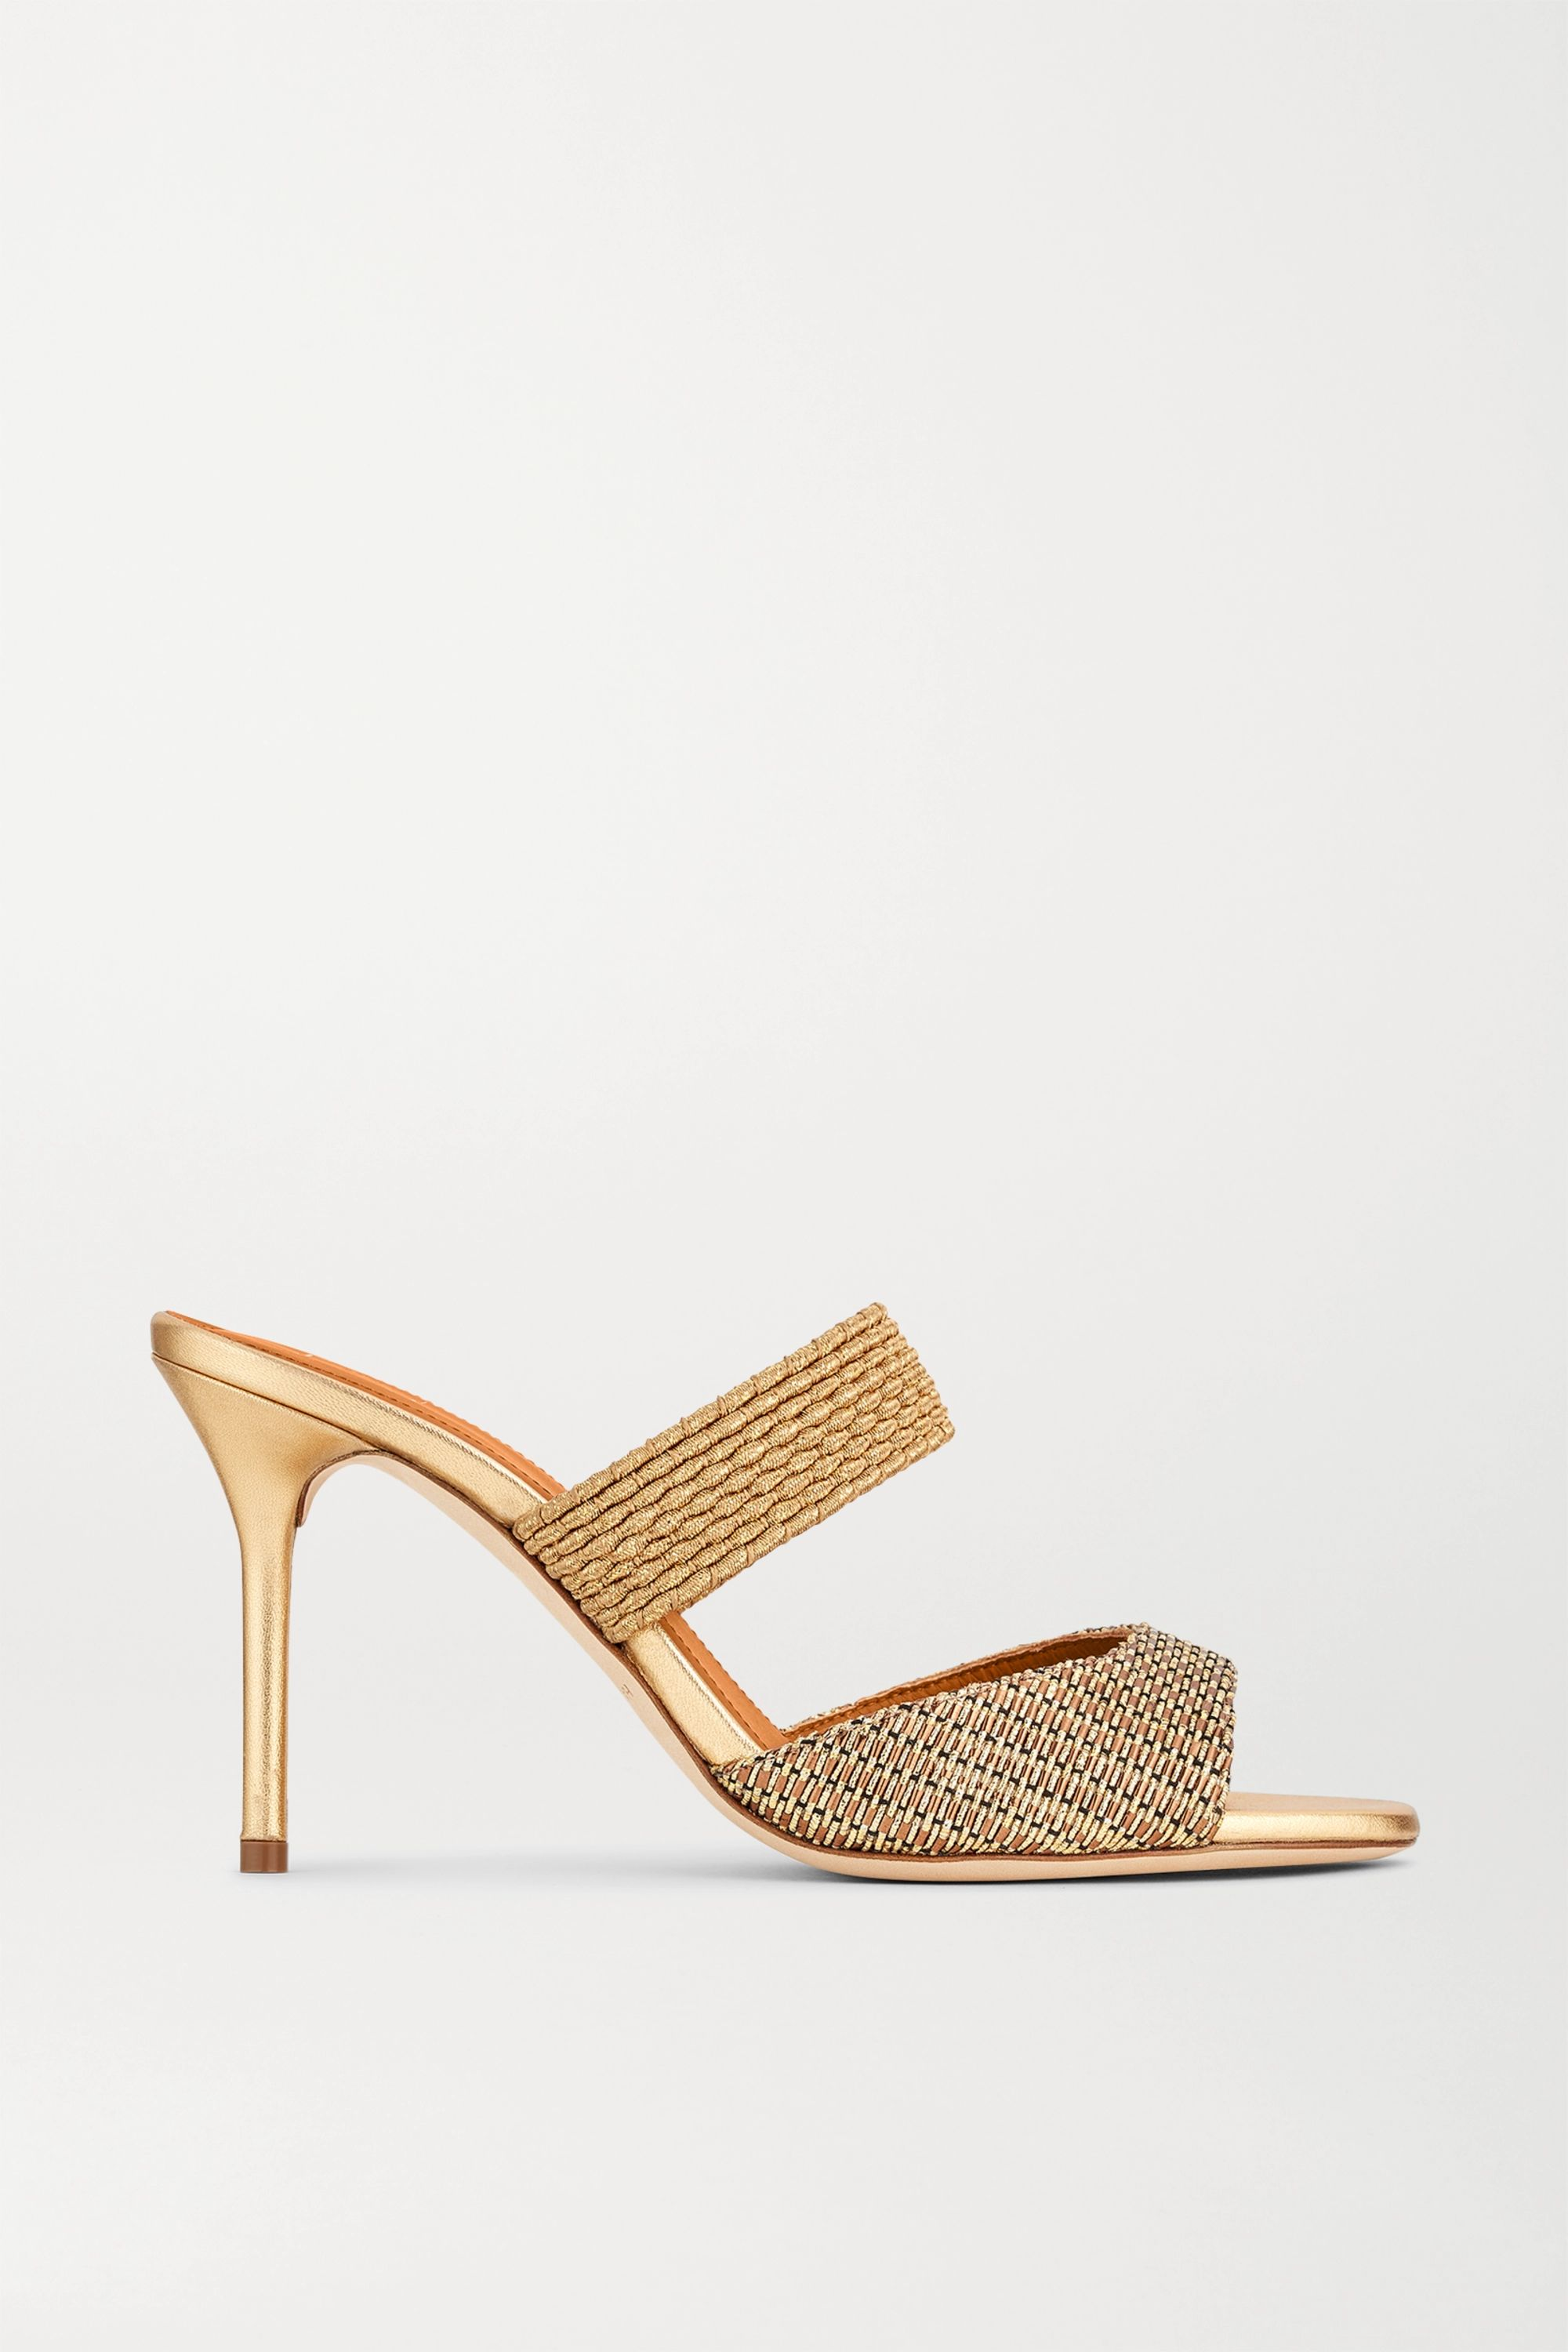 Malone Souliers Milena 85 cord-trimmed Lurex mules